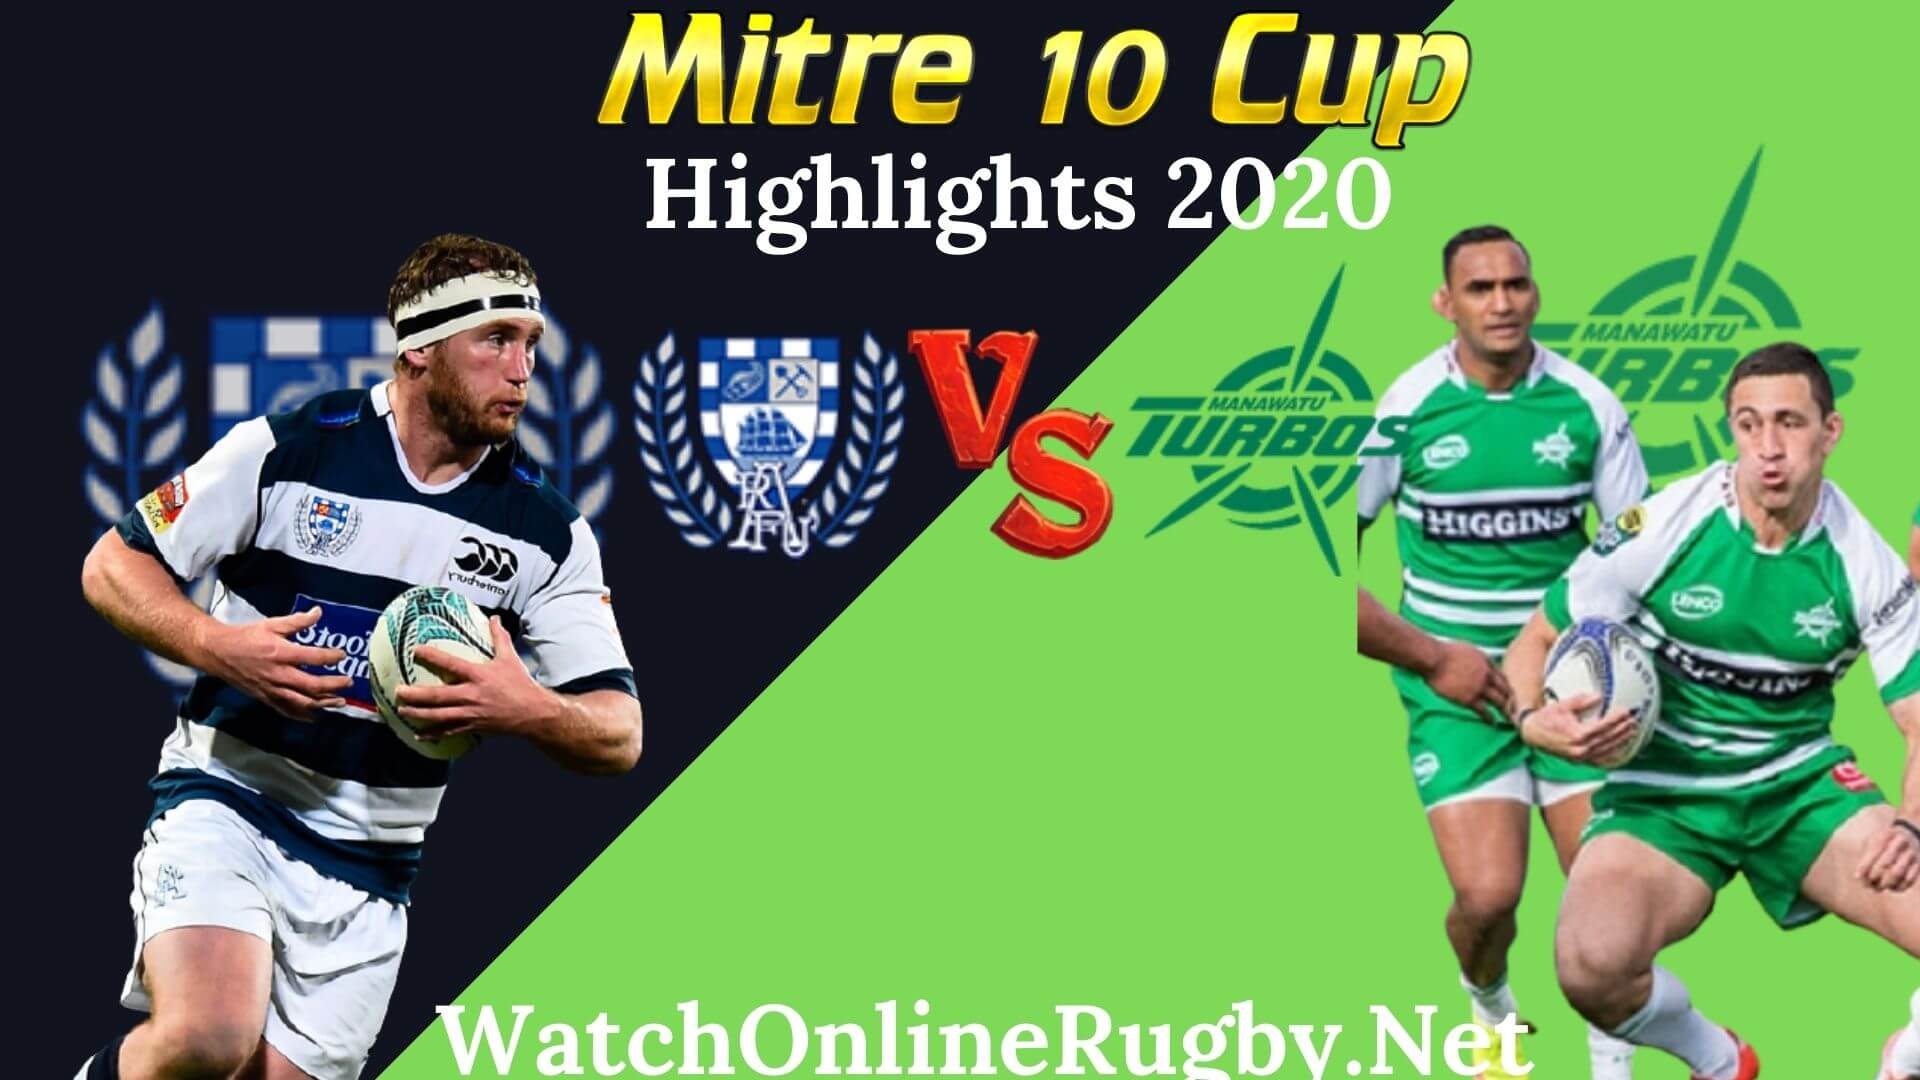 Auckland vs Manawatu RD 3 Highlights 2020 M10 Cup